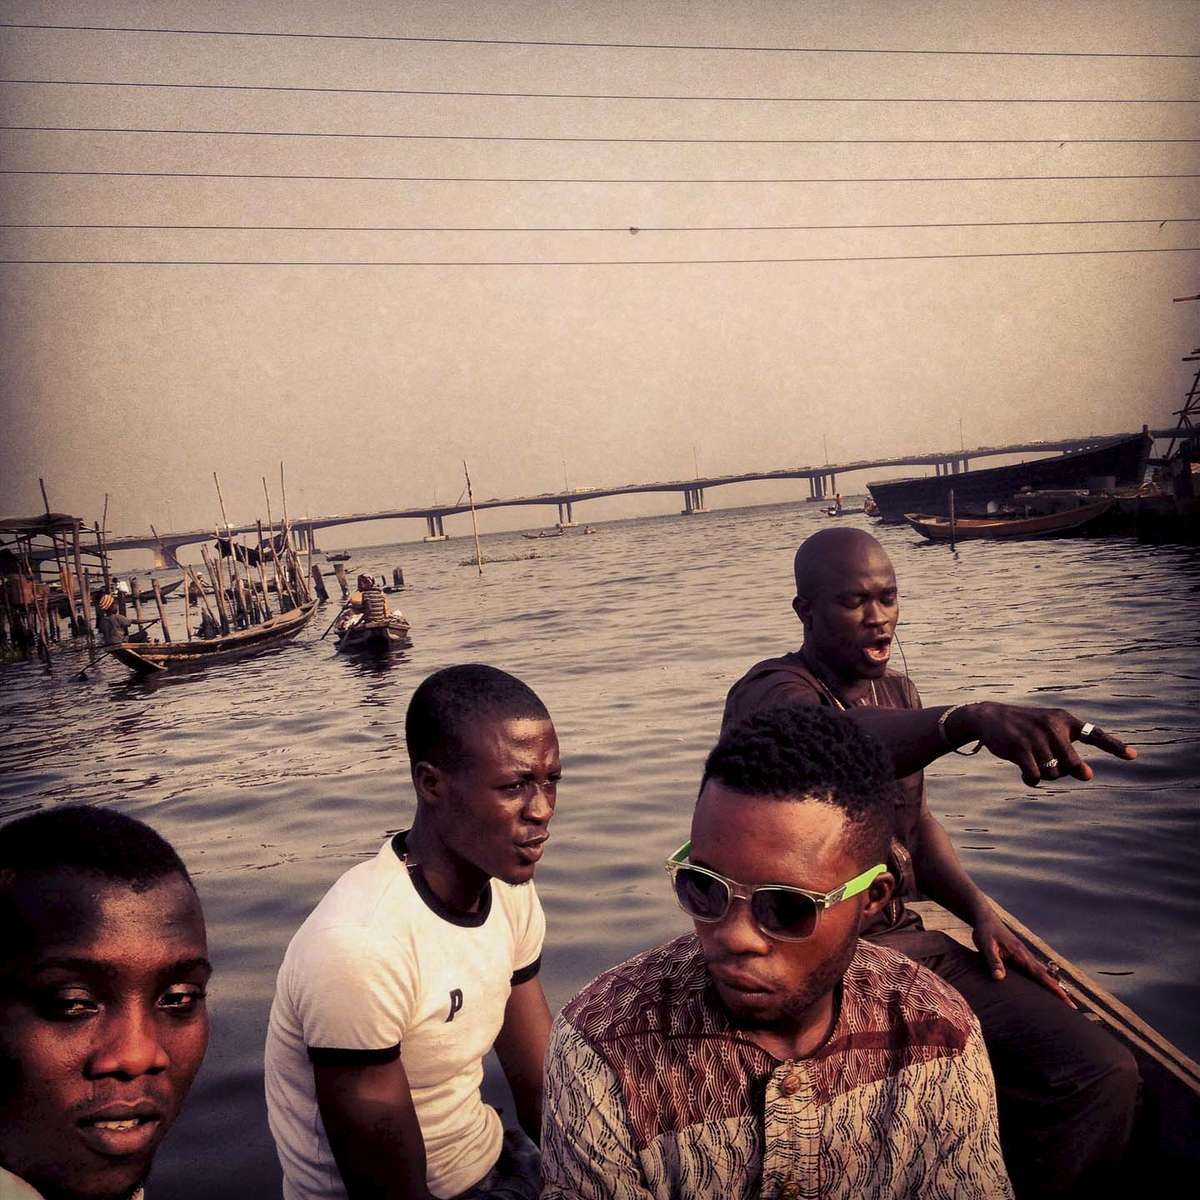 Riding a boat through Makoko, a slum on the water in Lagos, Nigeria, on the way to a Christmas party. December 2012.